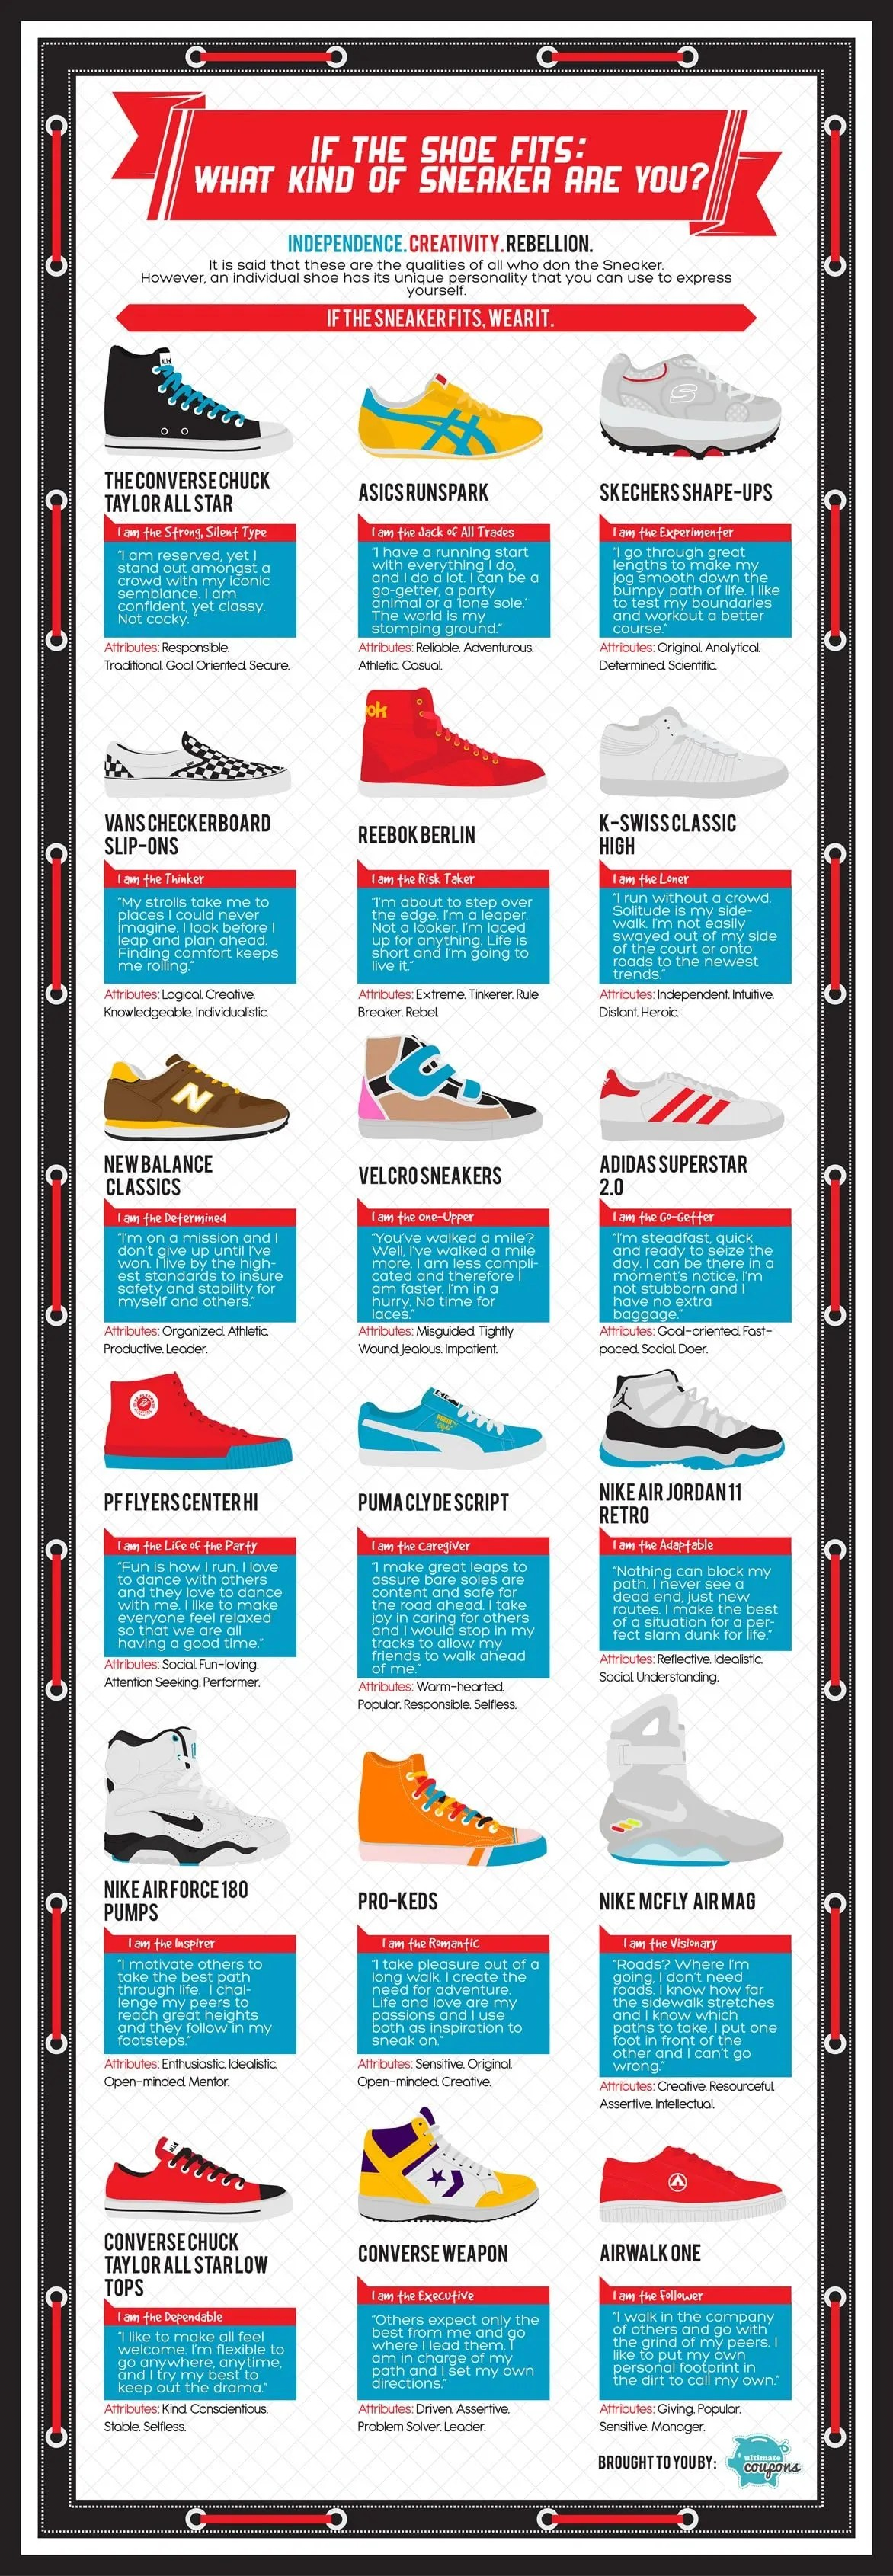 Infographic: If the Shoe Fits - What Kind of Sneaker Are You?